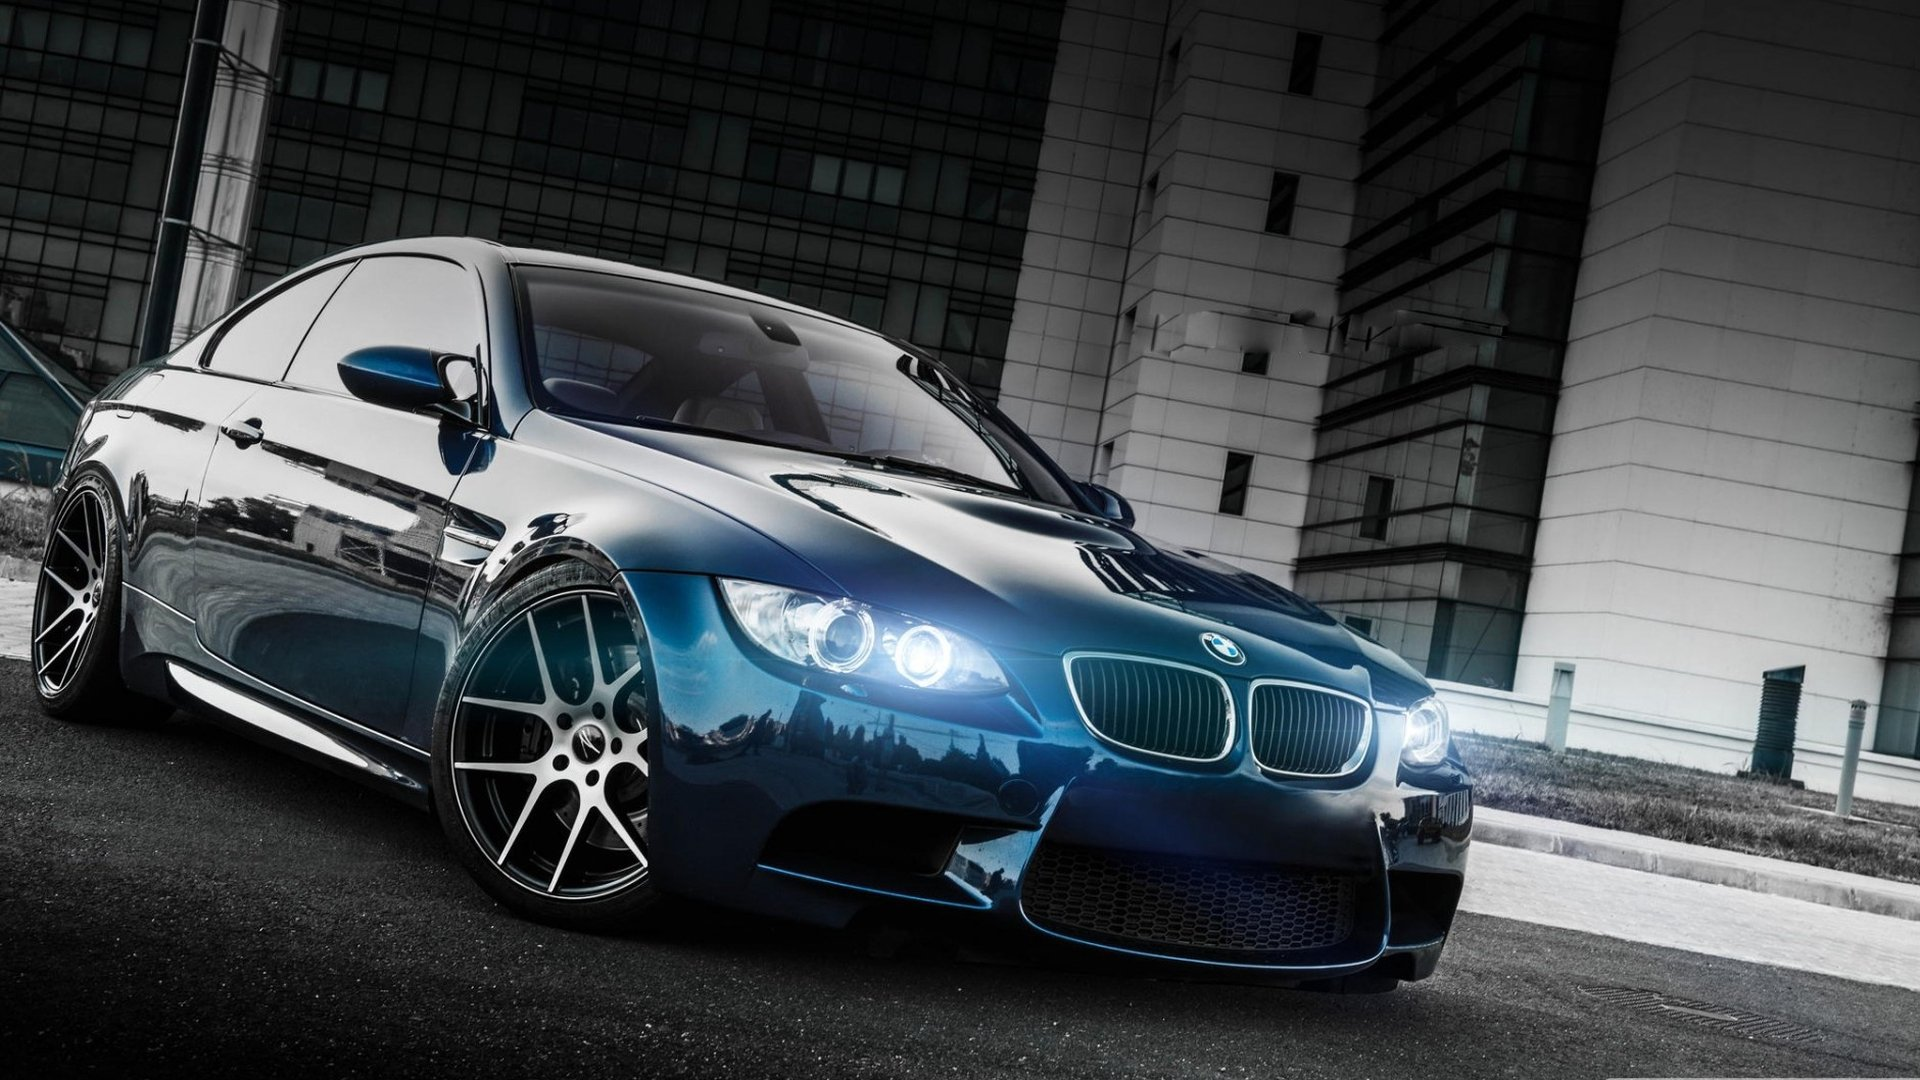 181 Bmw M3 Hd Wallpapers Background Images Wallpaper Abyss